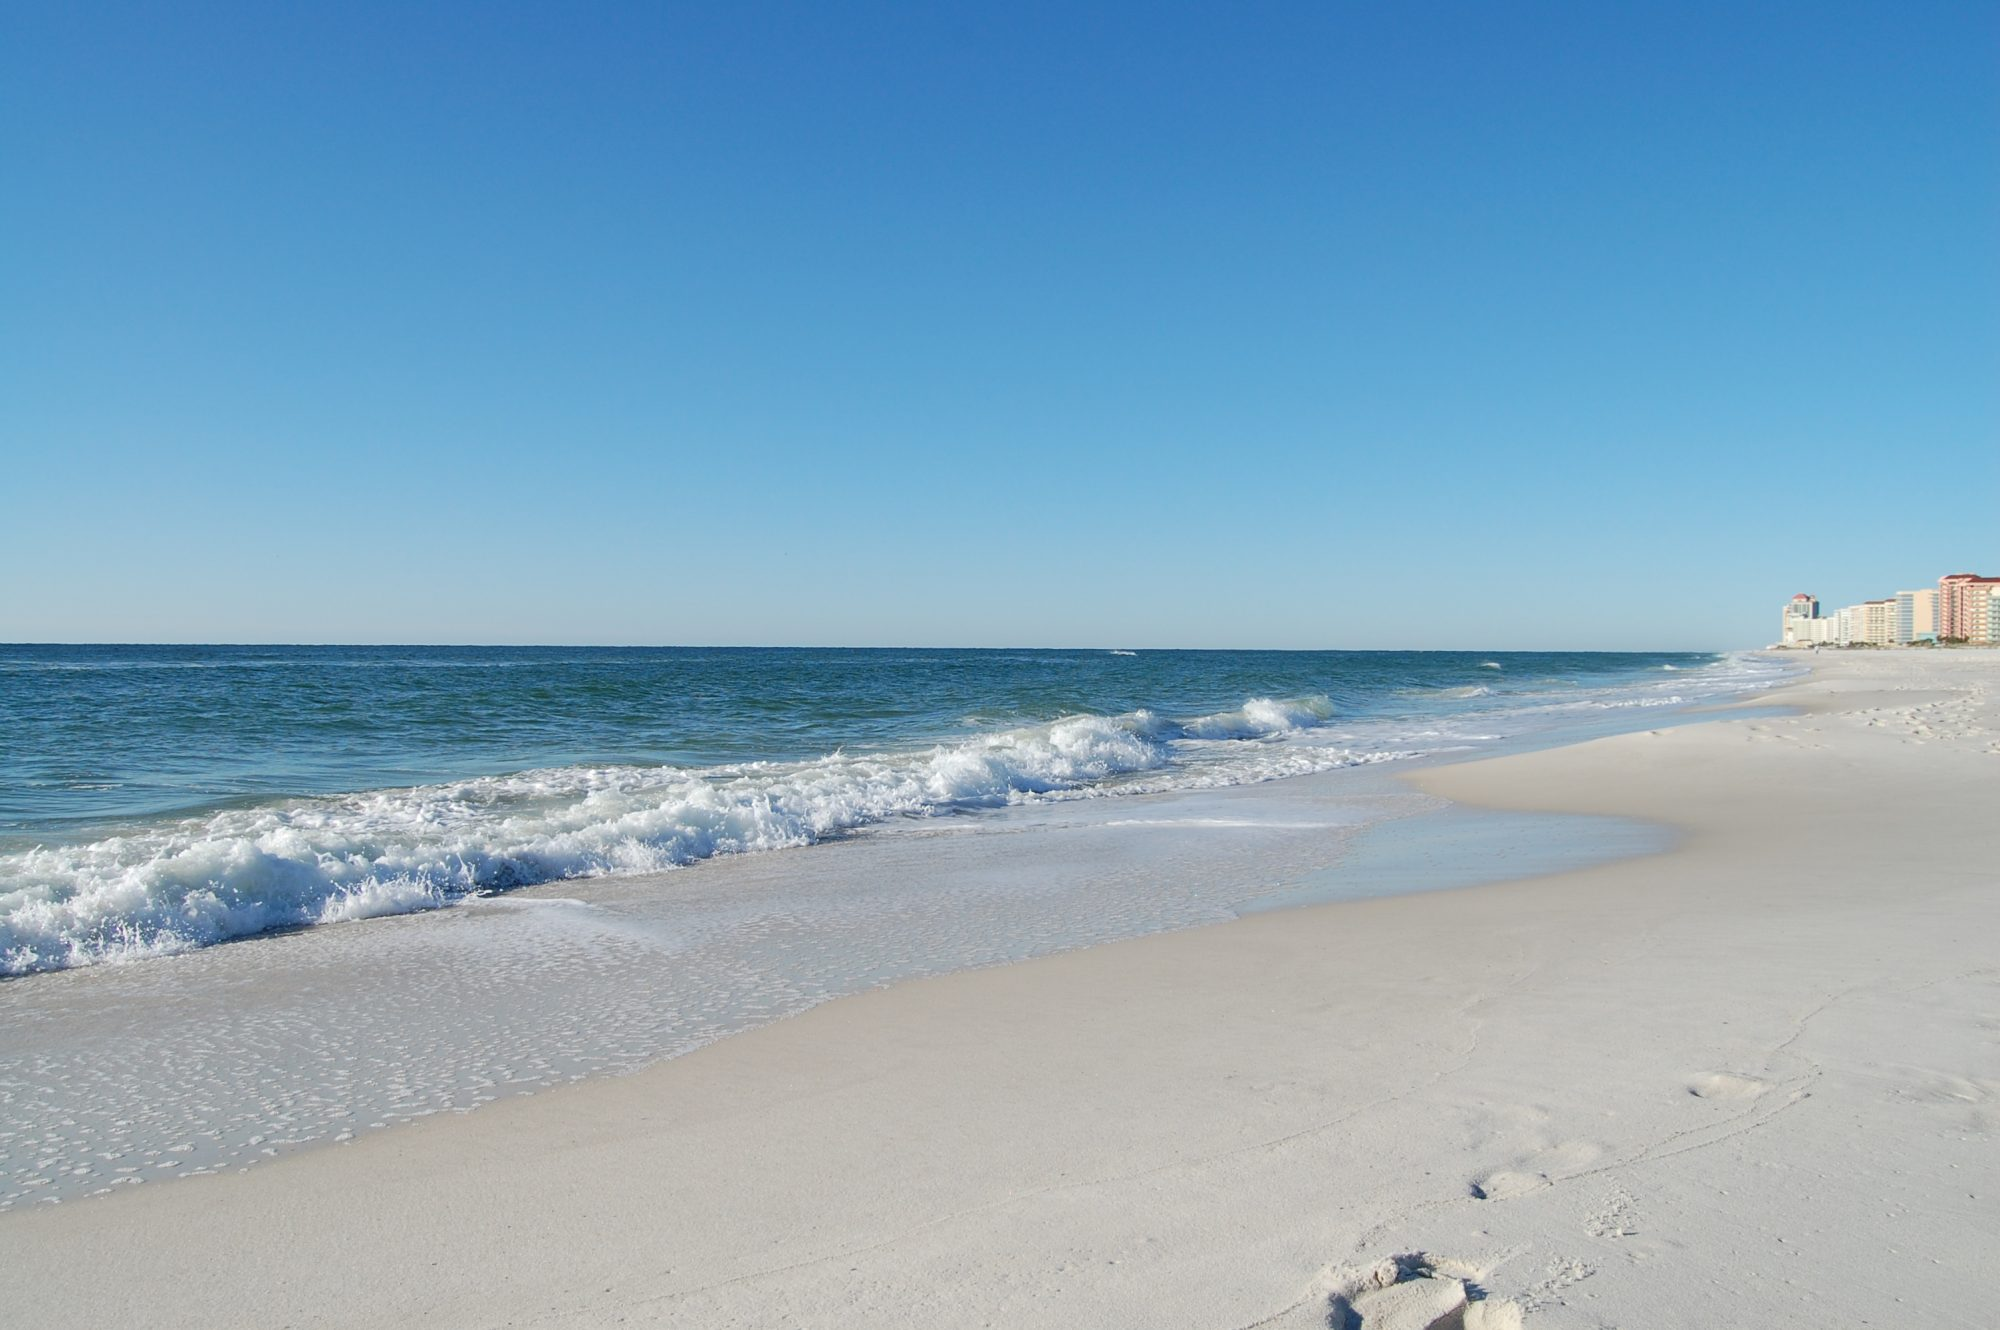 5. Orange Beach, Alabama